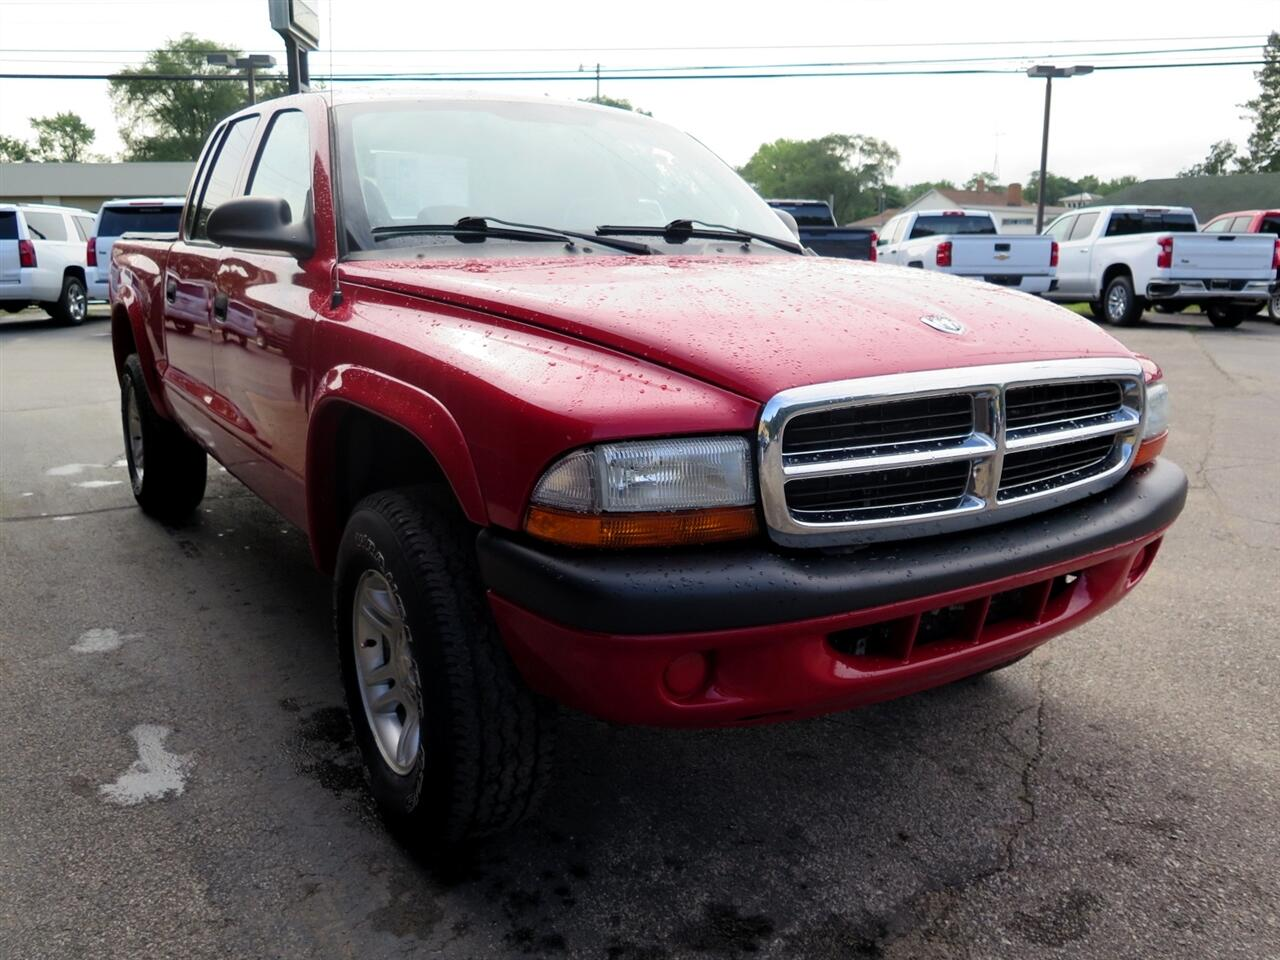 2004 Dodge Dakota Sport Quad Cab 4WD